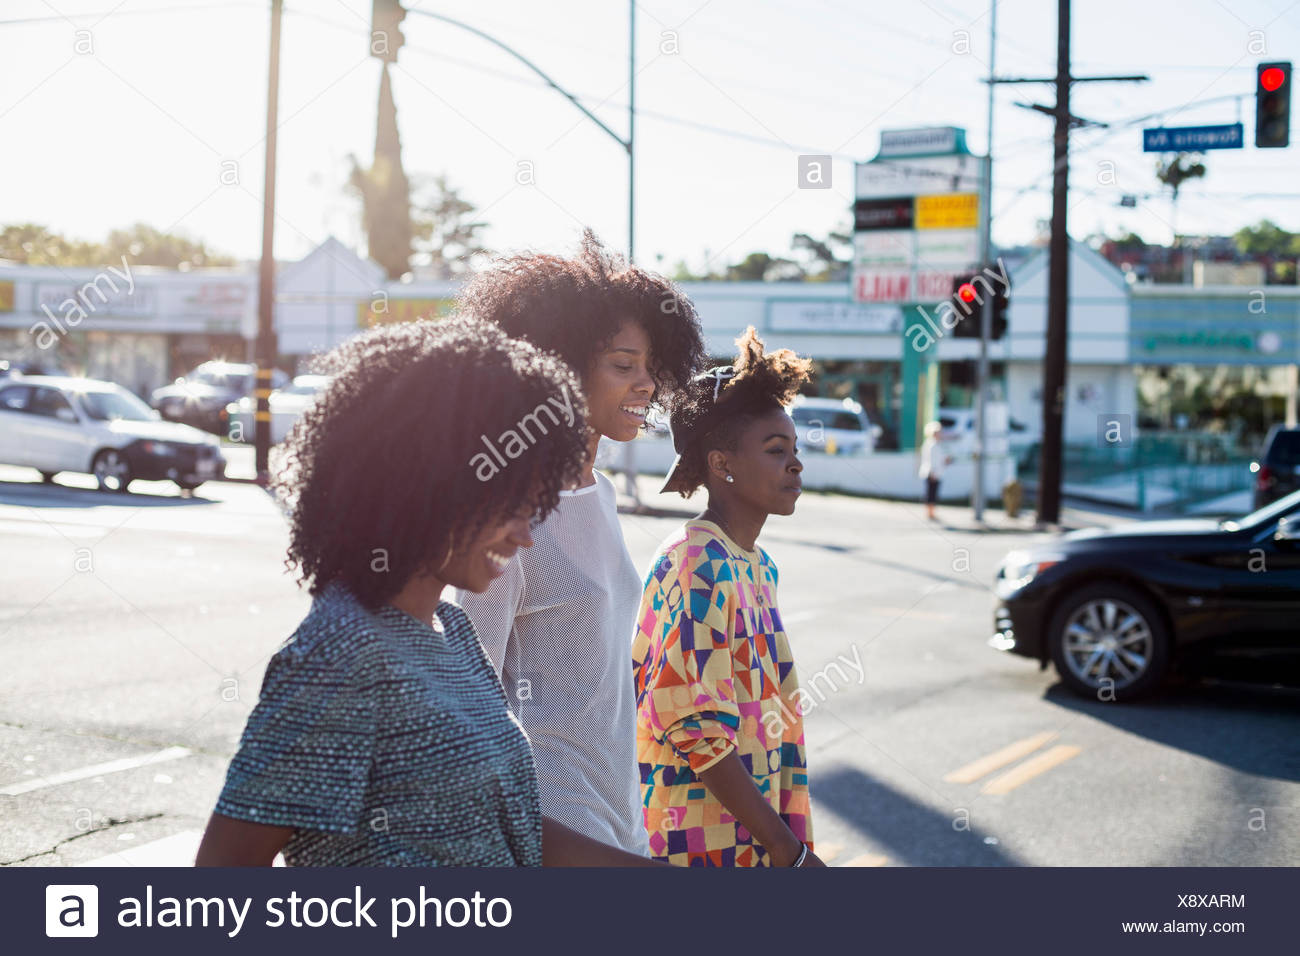 Three young women. - Stock Image